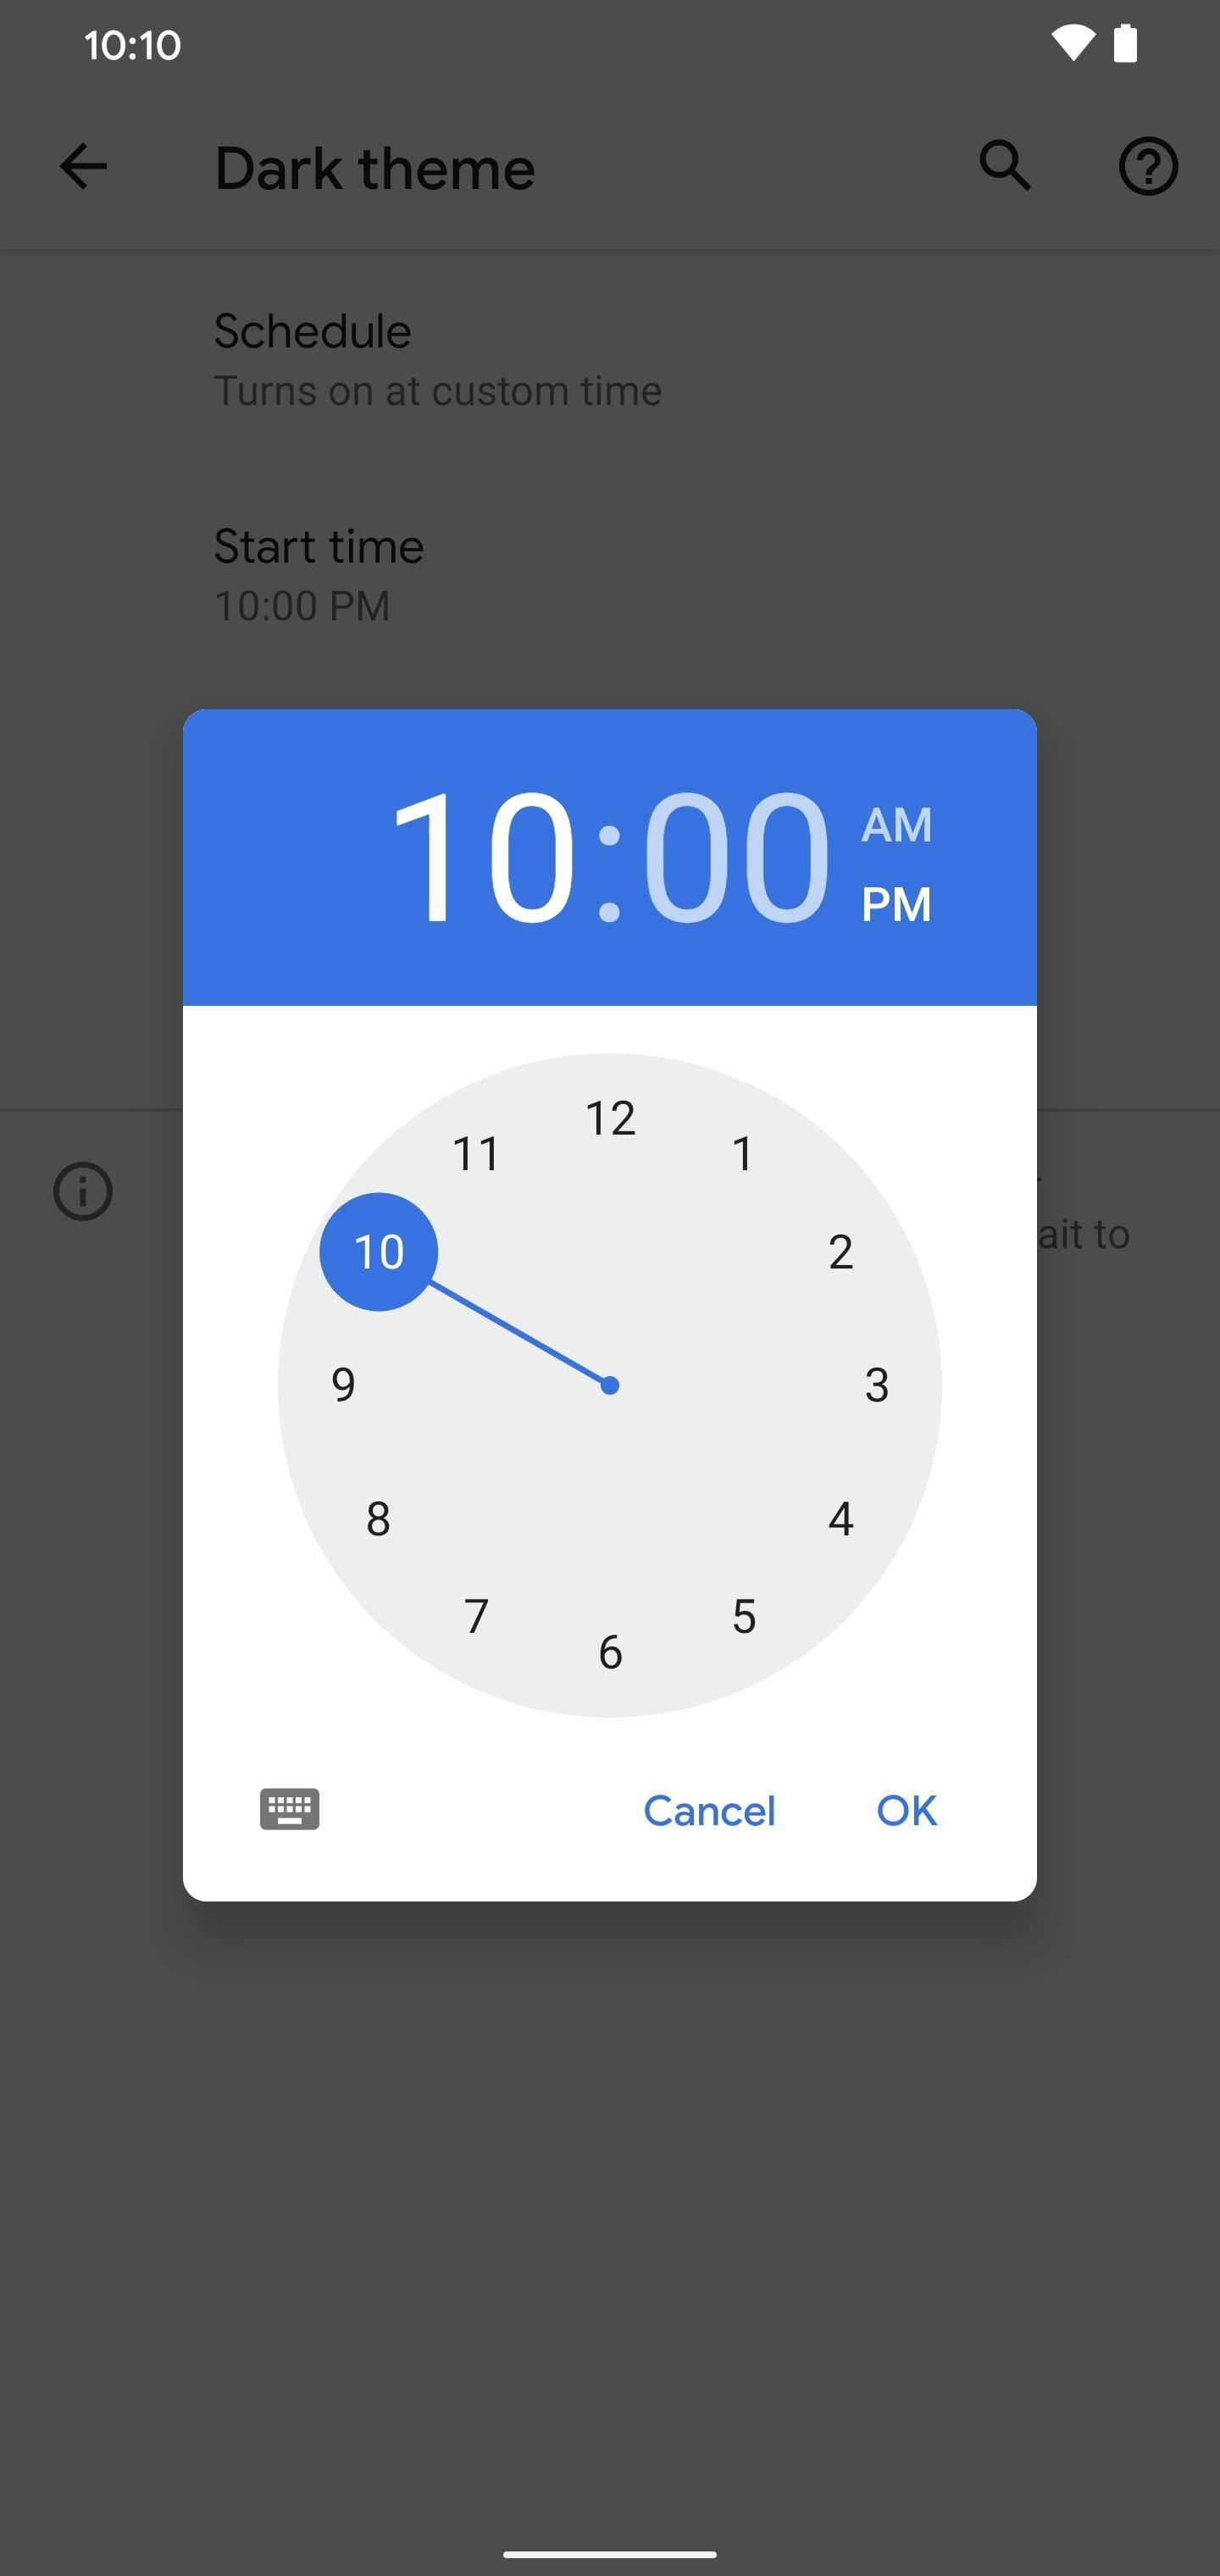 Make Your Pixel's Dark Mode Turn on Automatically at Sunset or a Specific Time